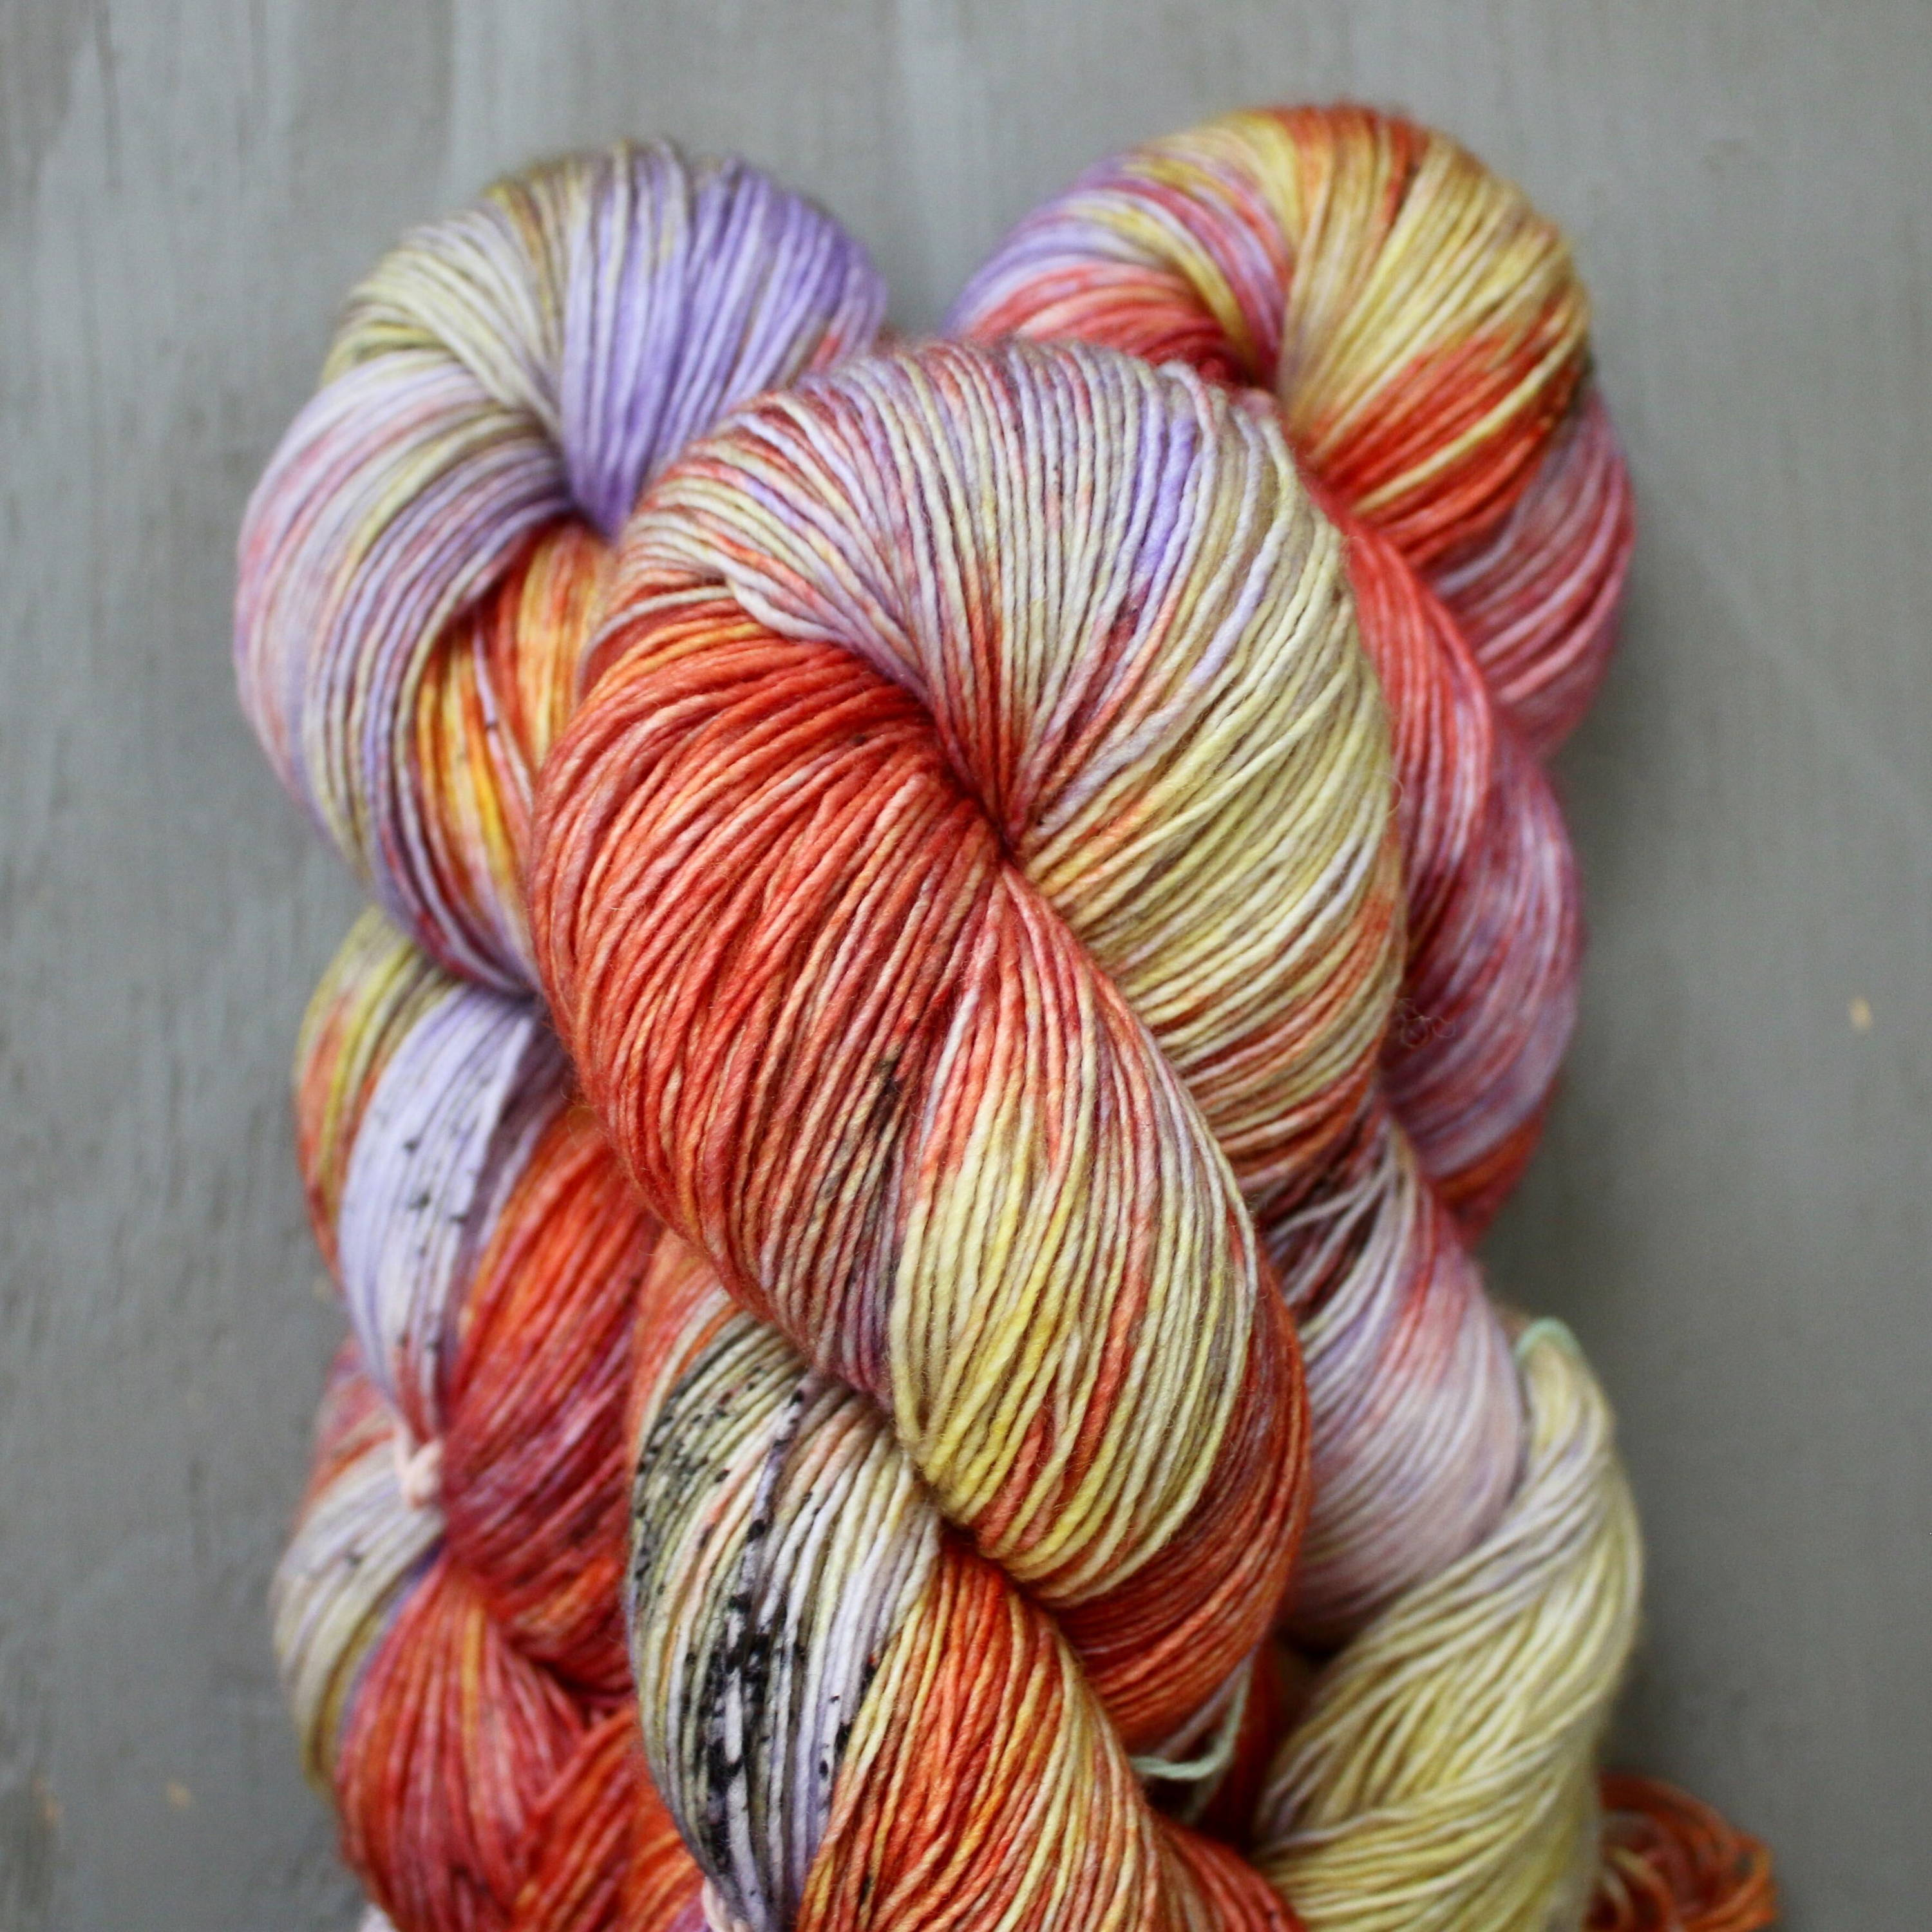 Sunup Colorway